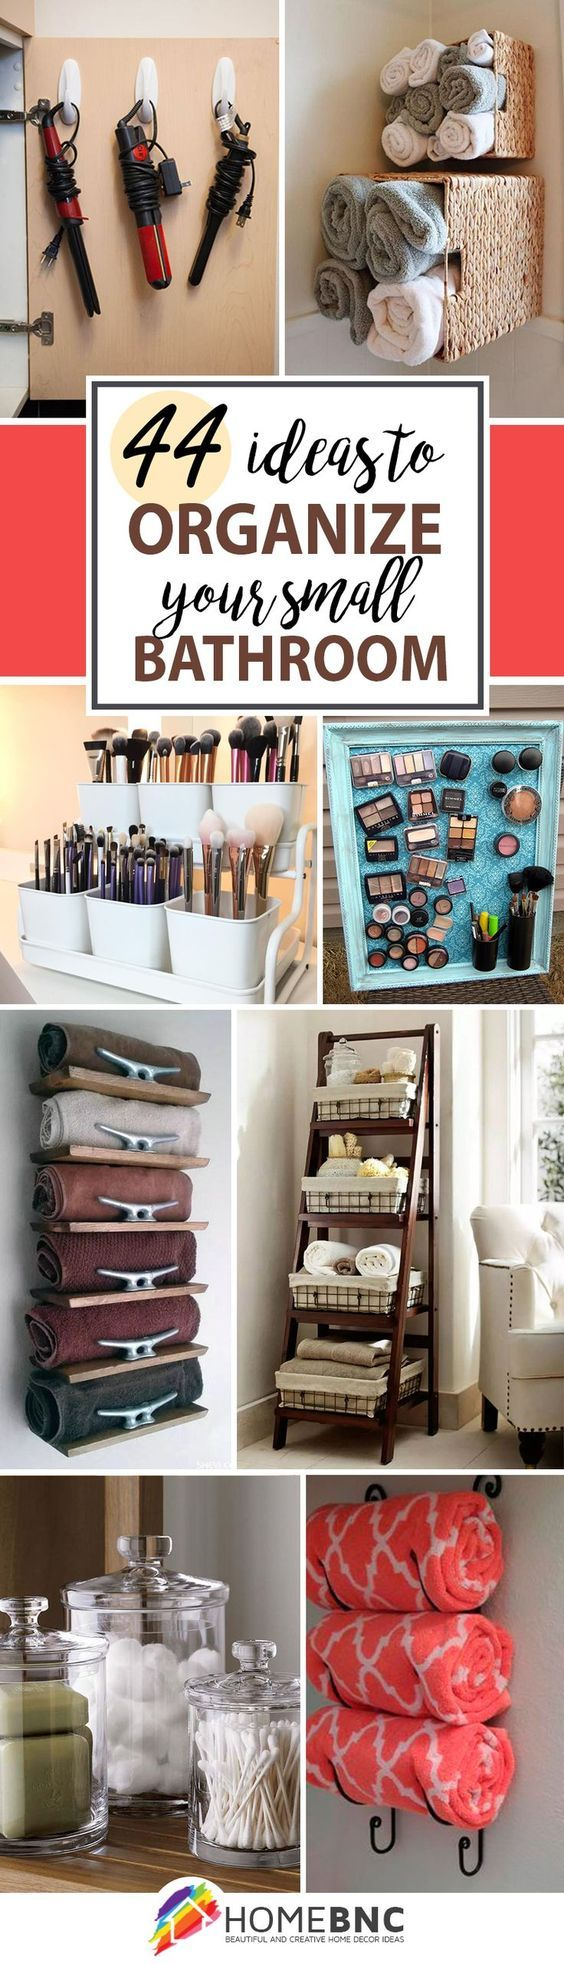 Re-organize your towels and toiletries during your next round of spring cleaning. Check out some of the best small bathroom